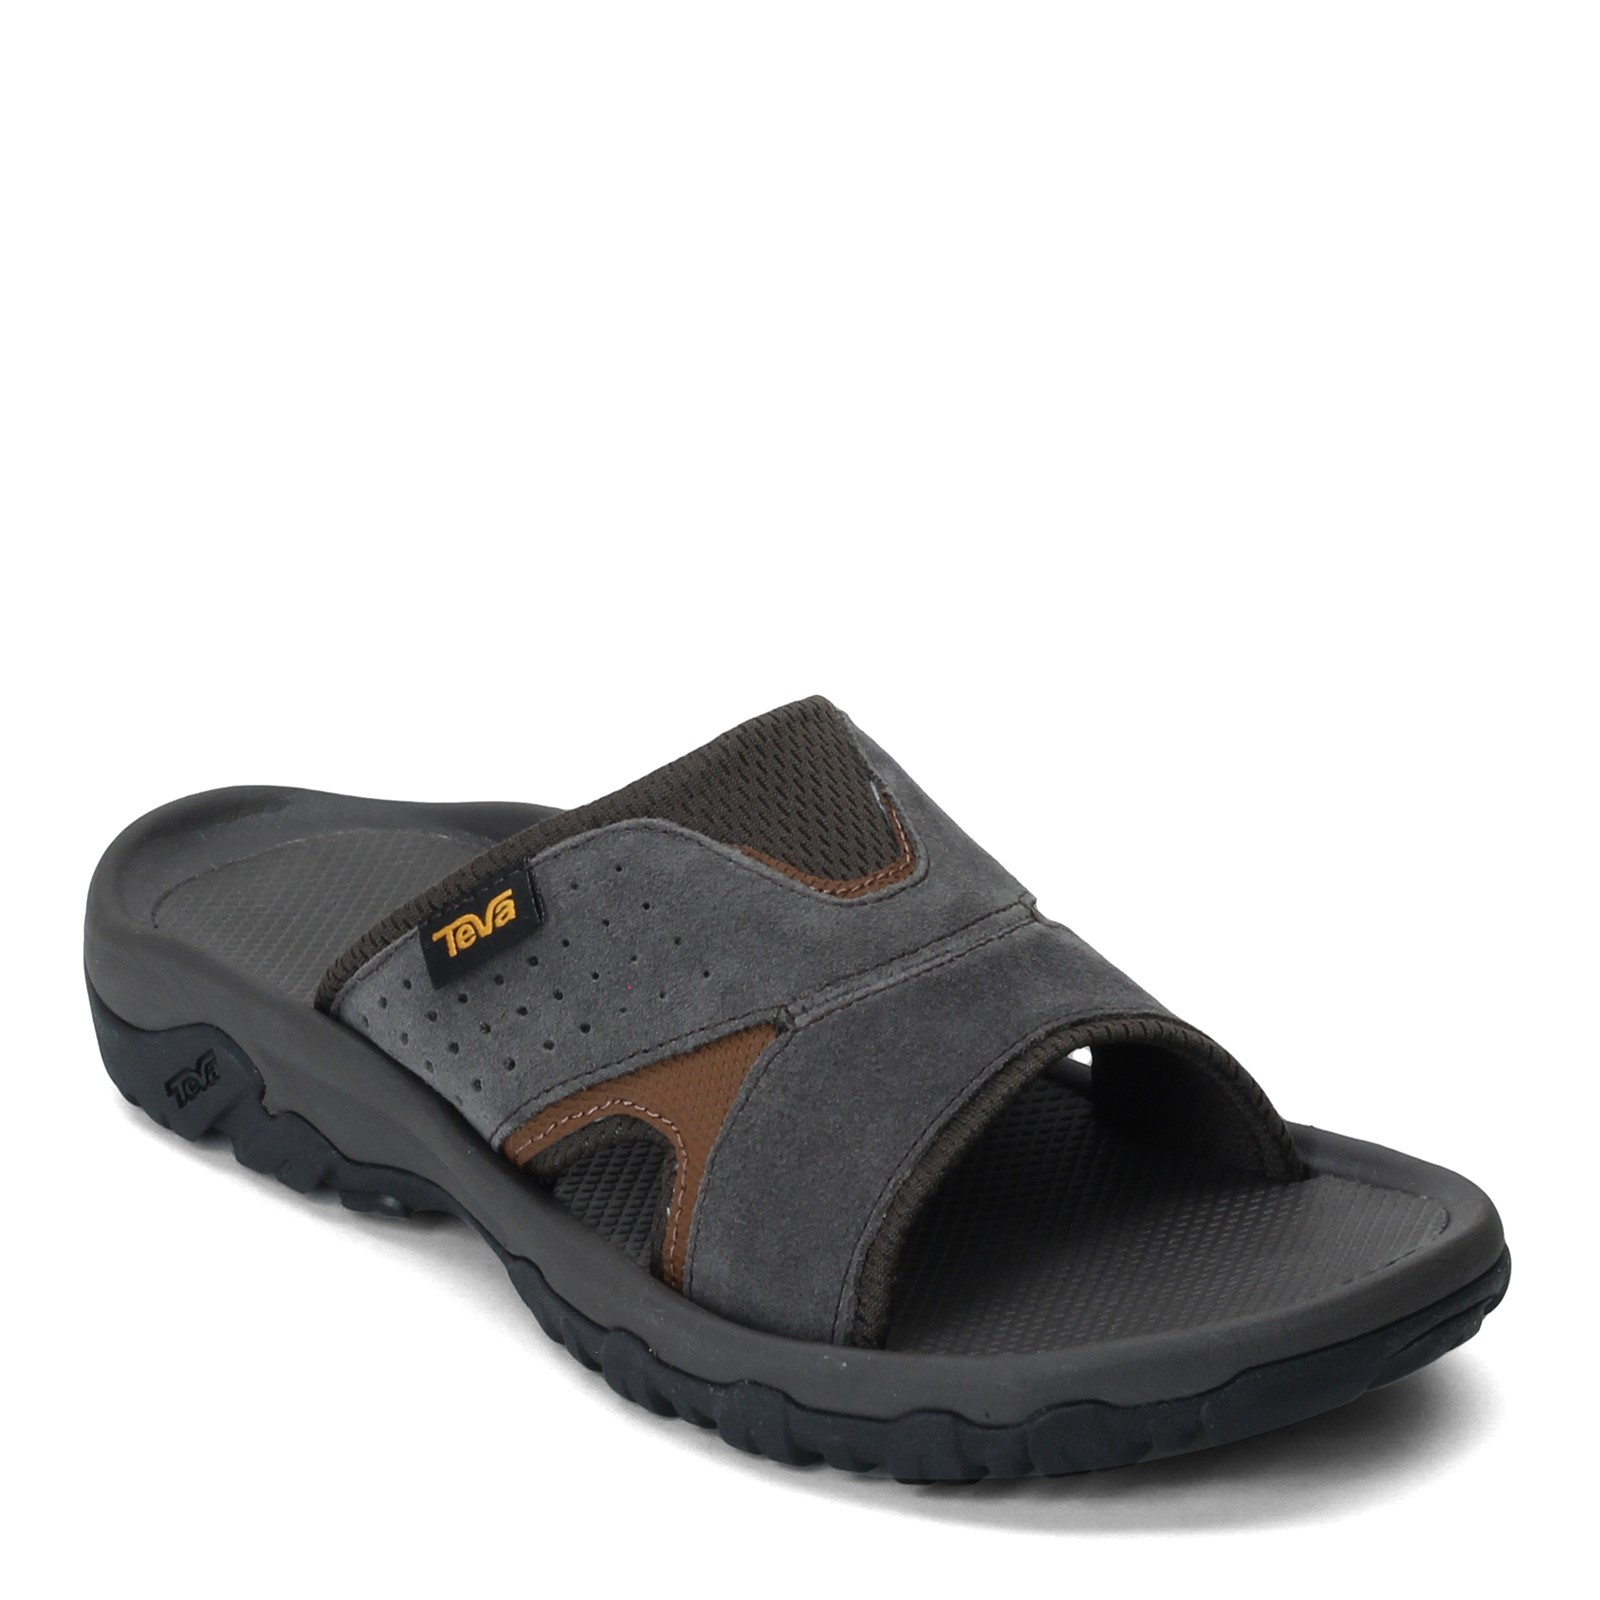 Men's Teva, Katavi 2 Slide Sandals